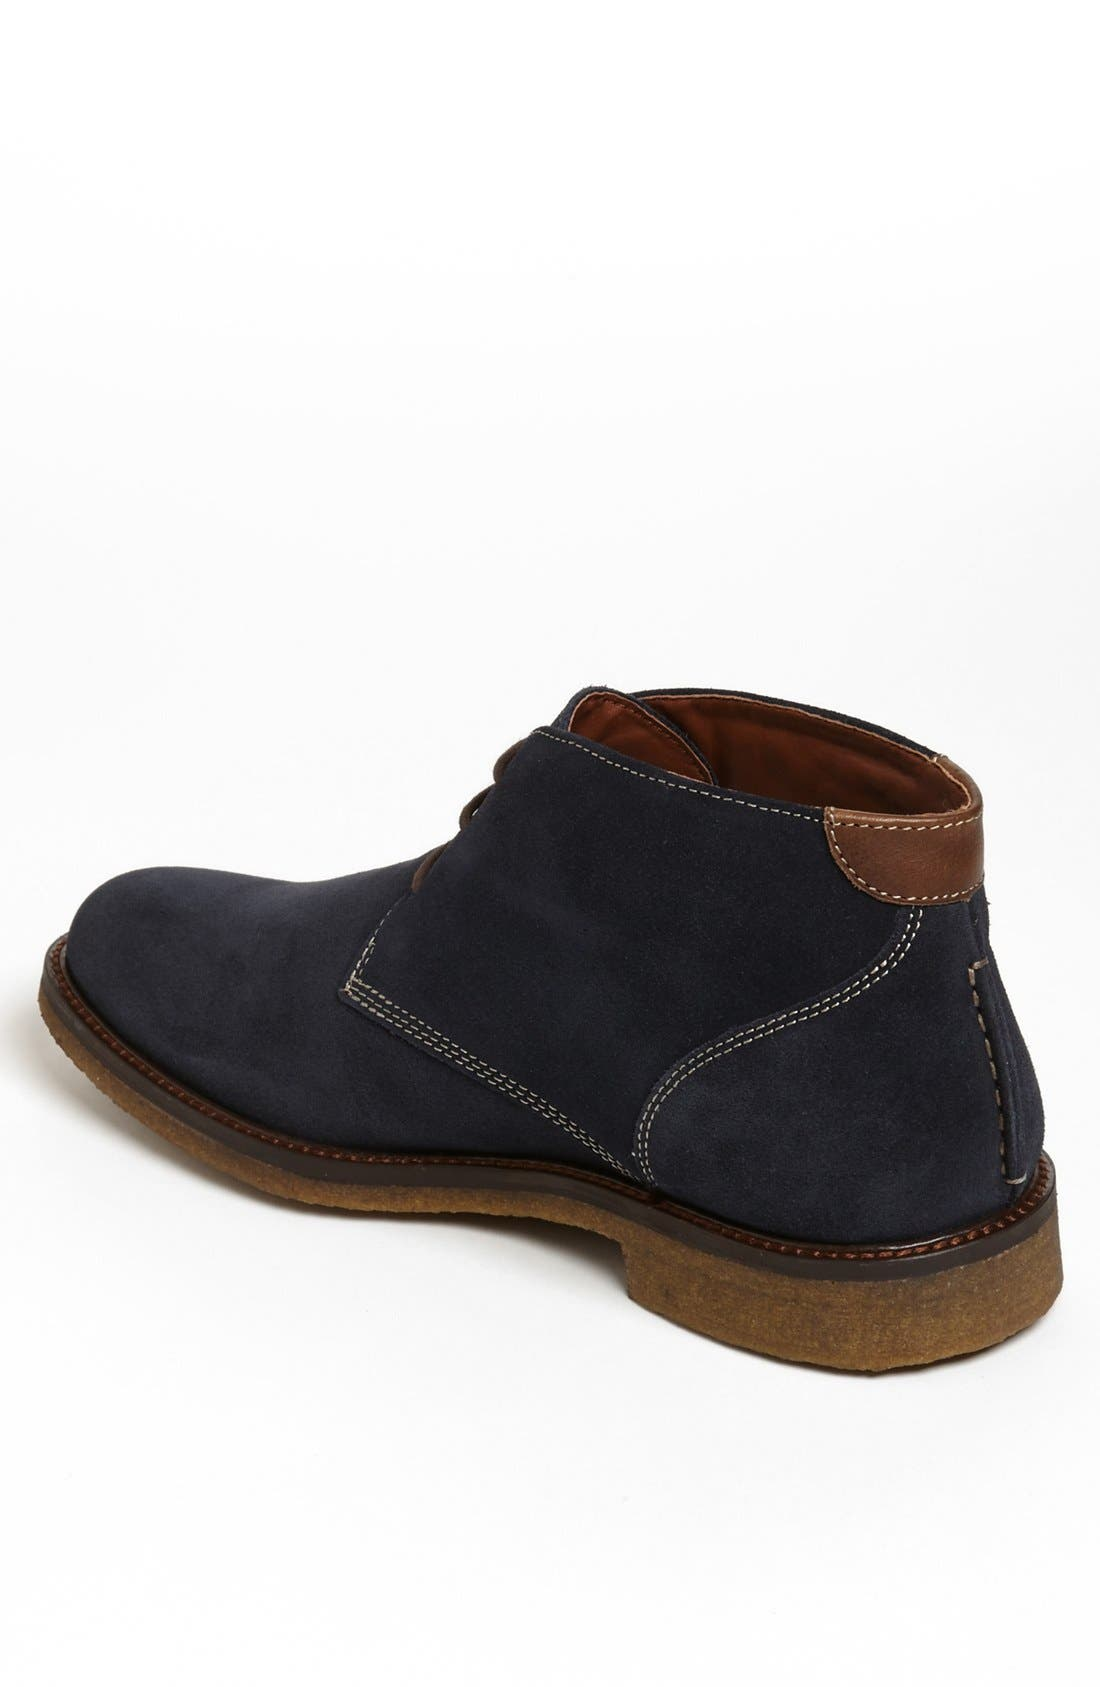 'Copeland' Suede Chukka Boot,                             Alternate thumbnail 17, color,